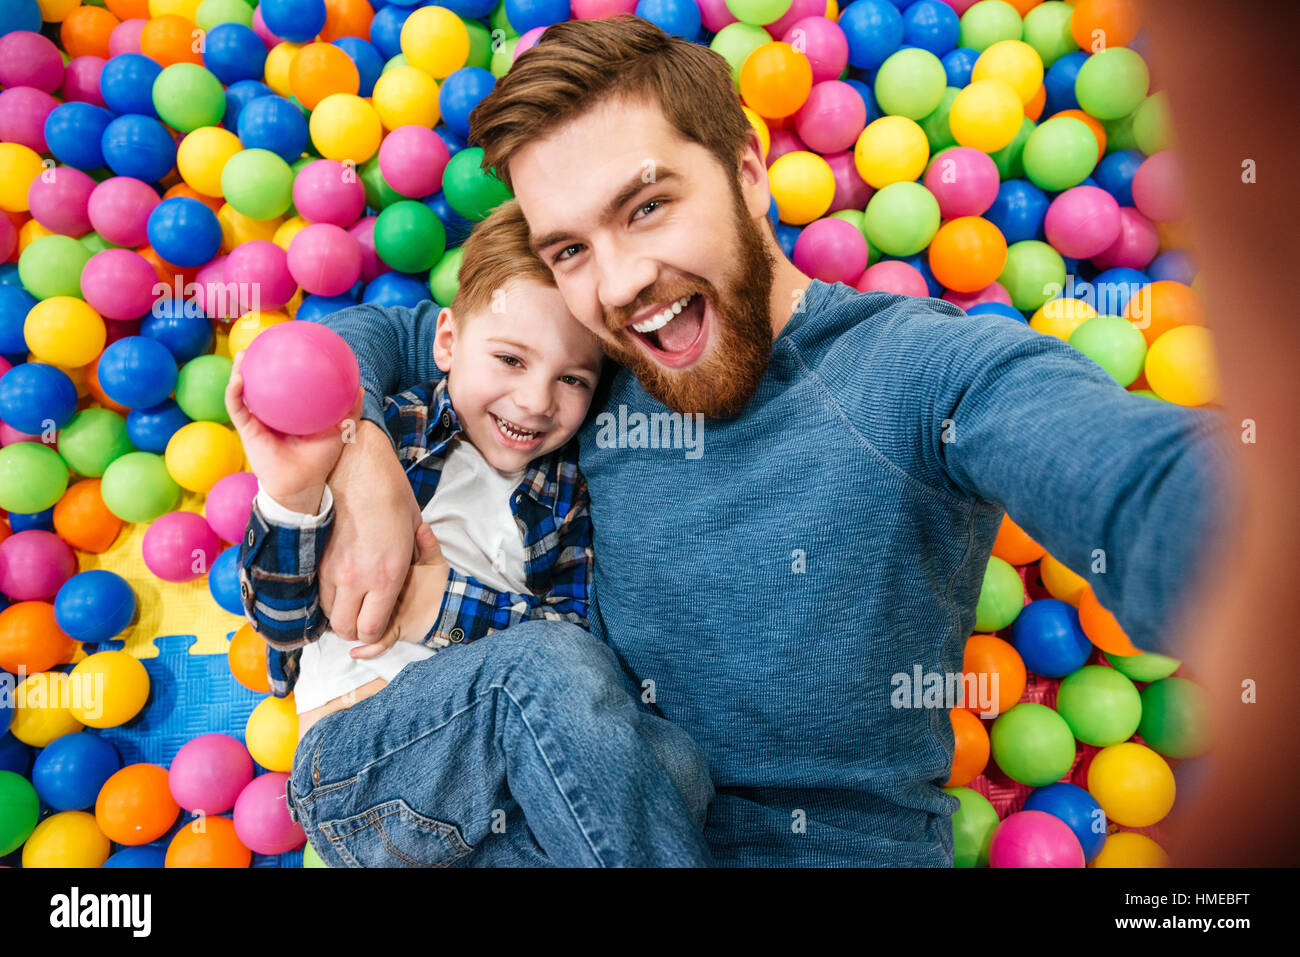 Cheerful bearded dad and little son talking selfie at pool with colorful balls Stock Photo